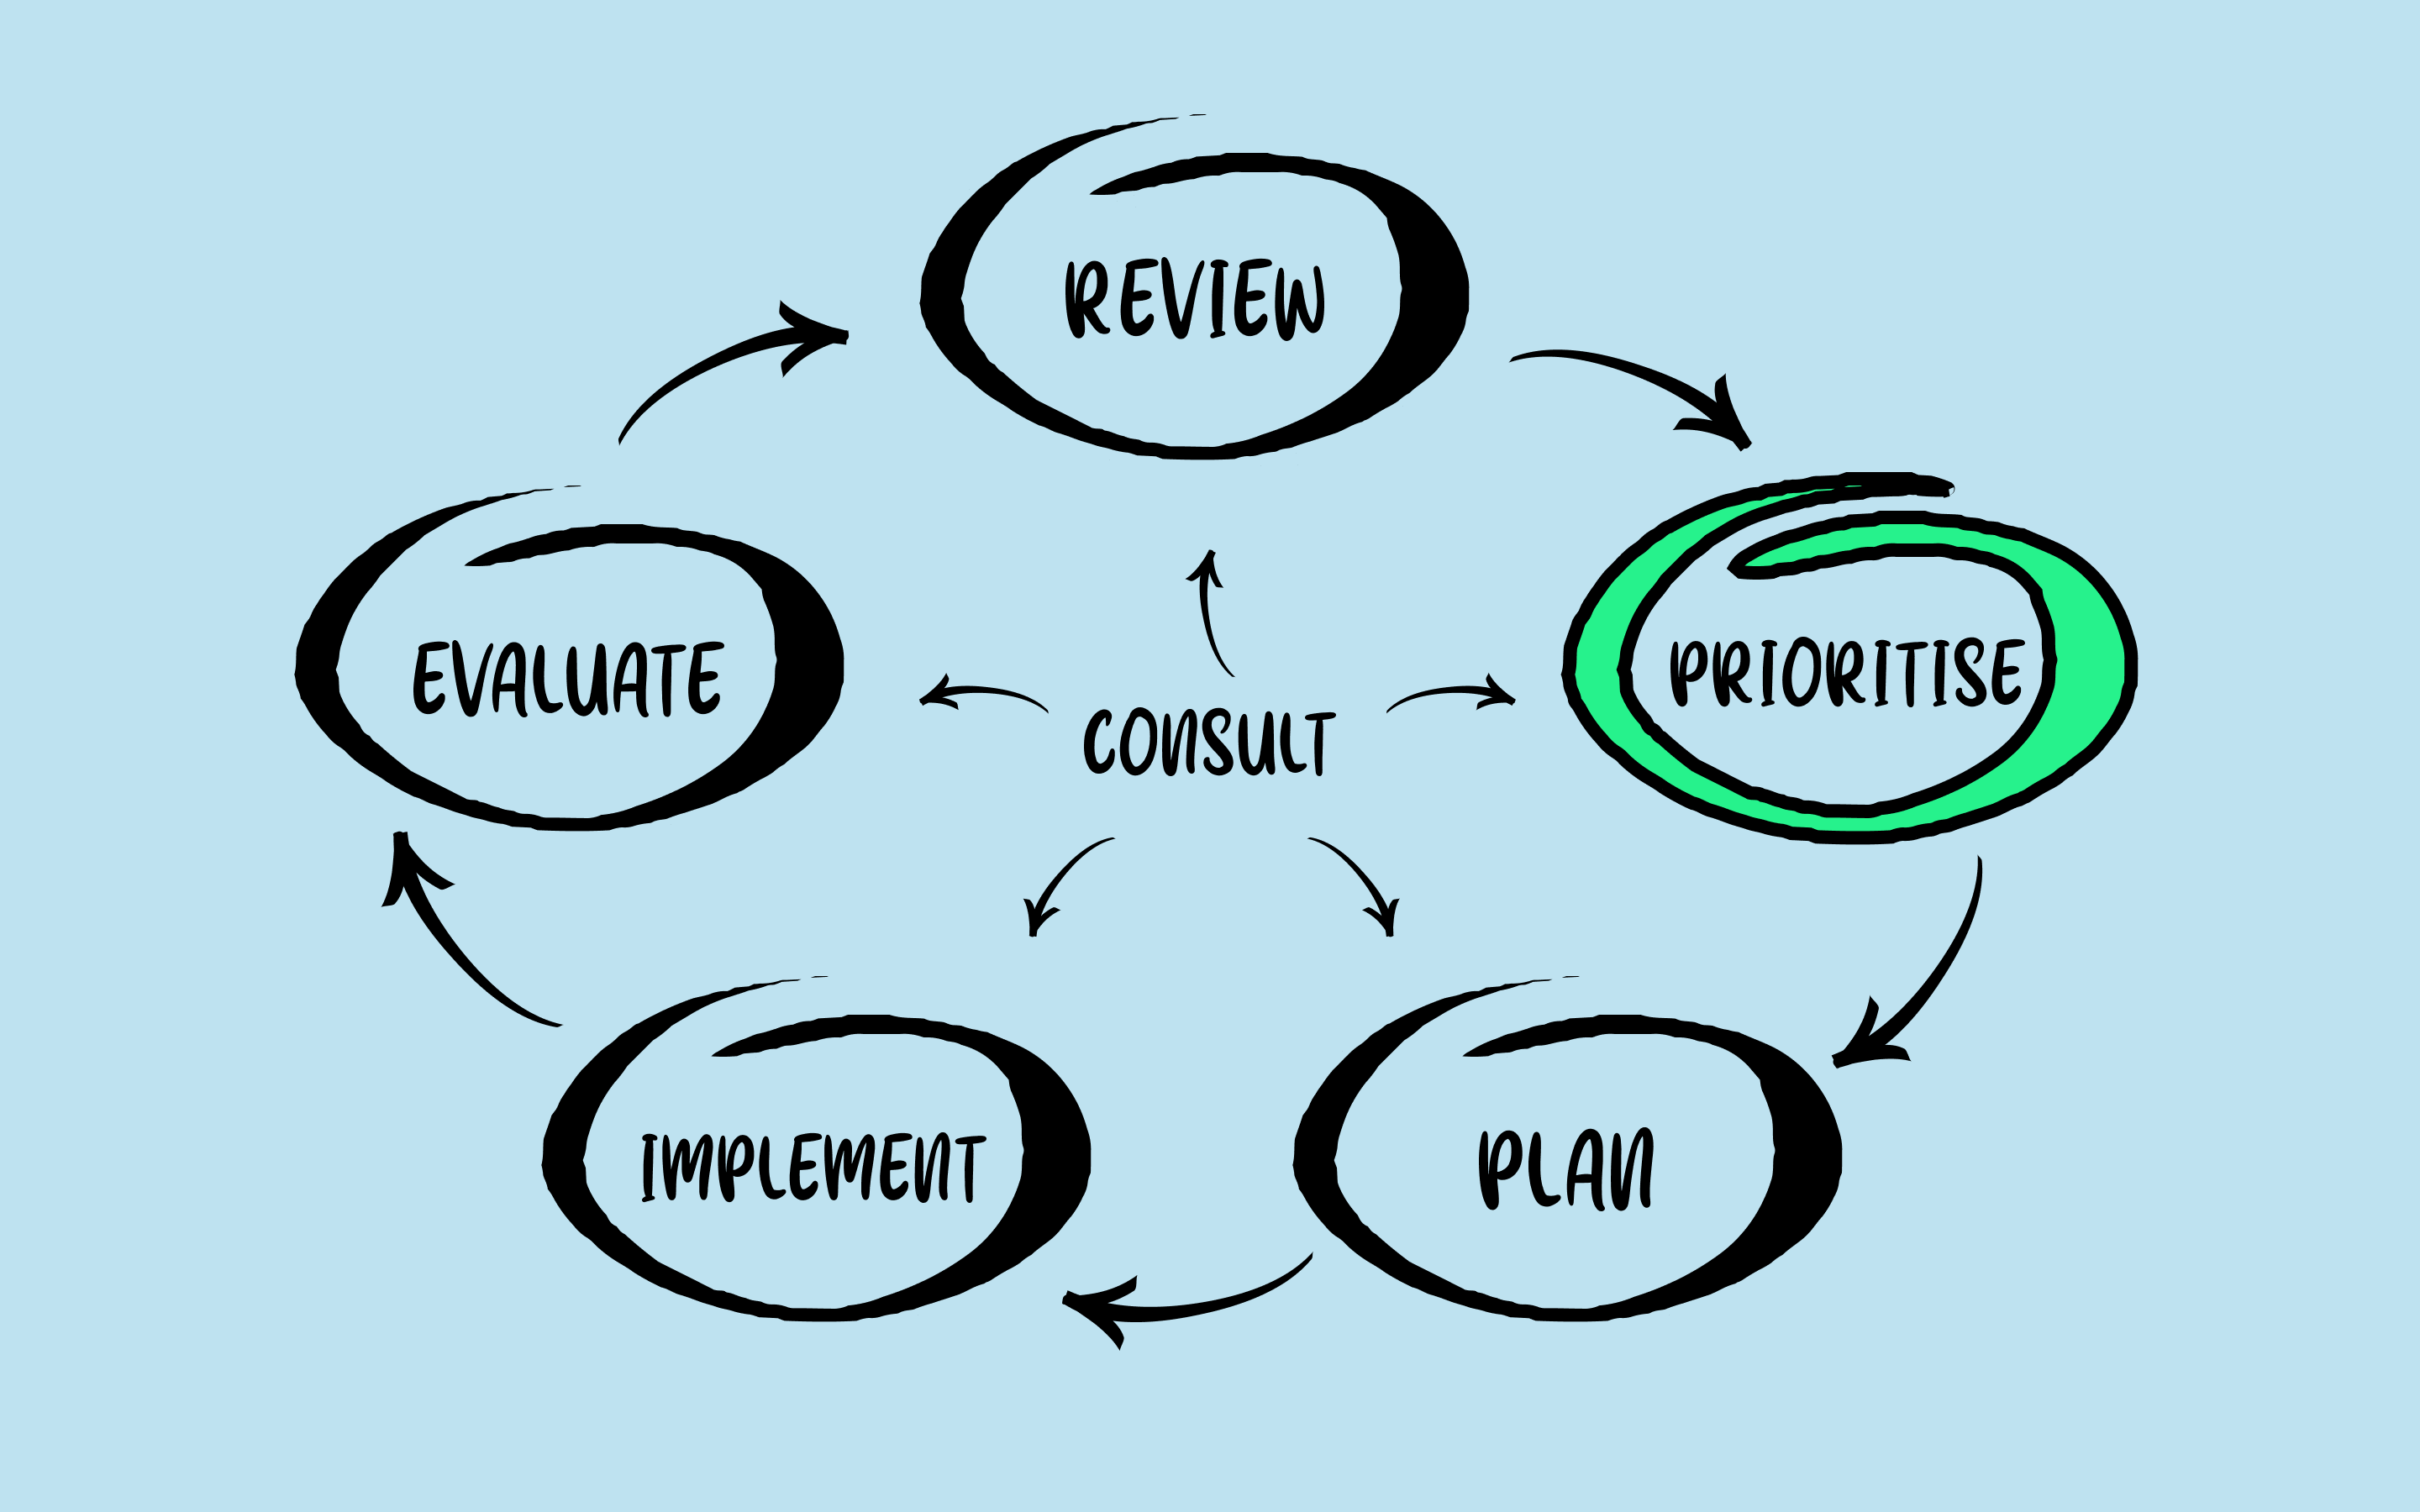 Diagram showing 'prioritise' highlighted